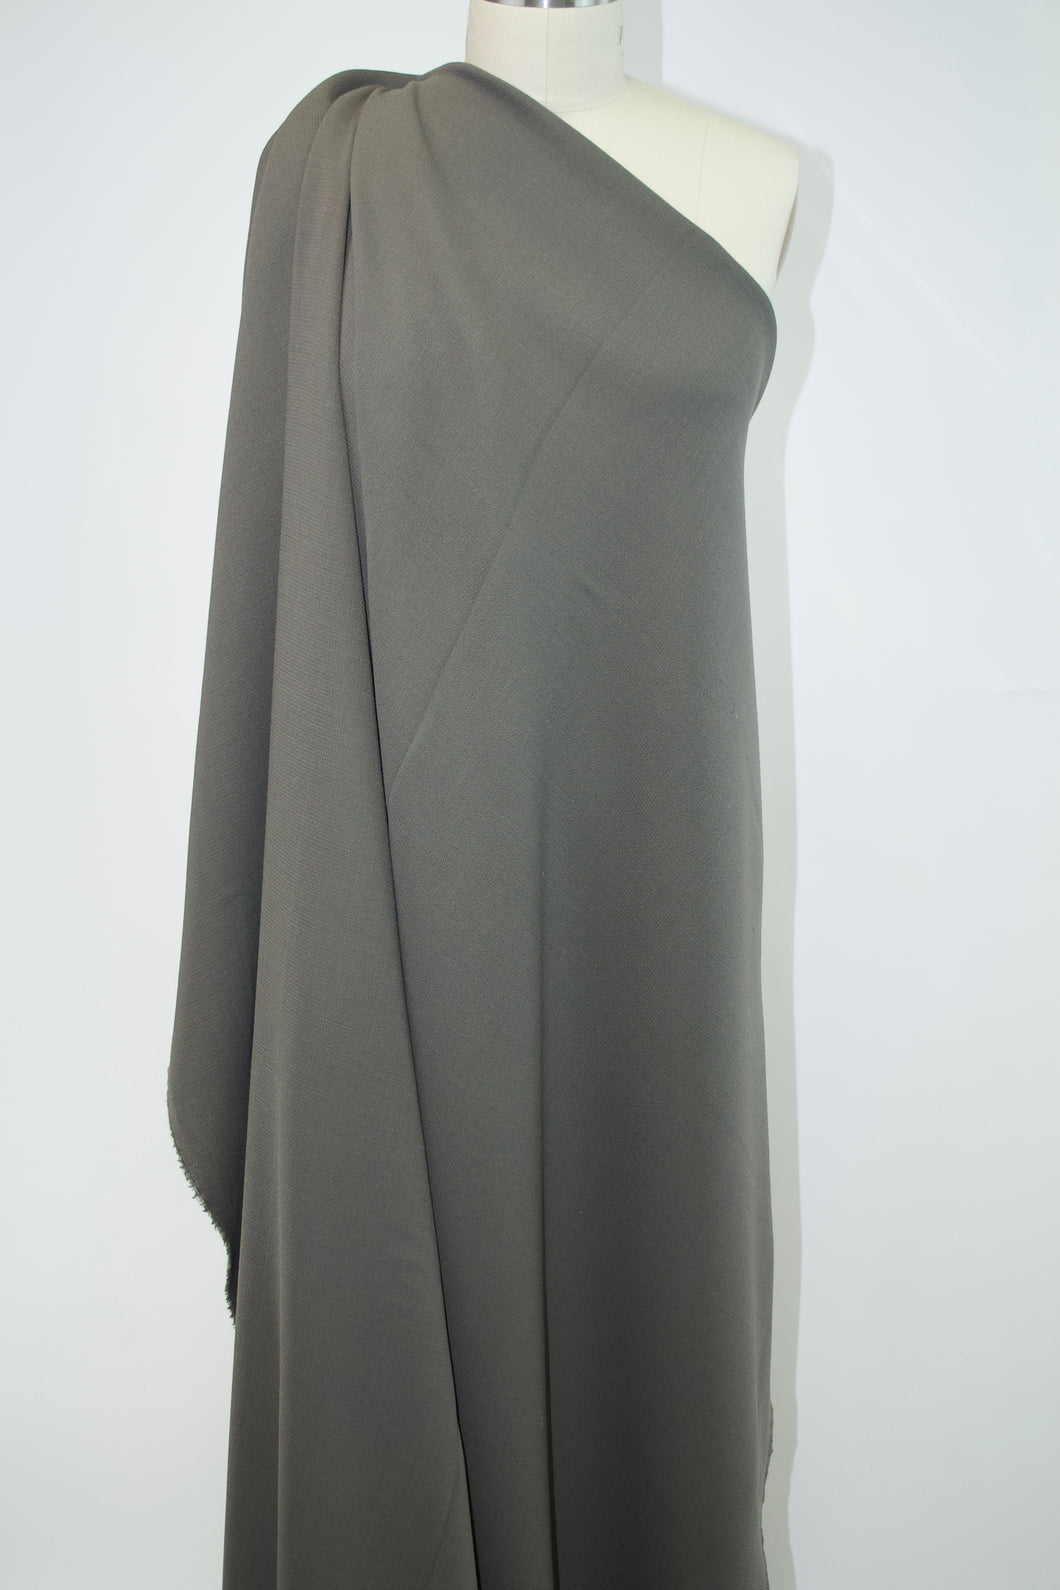 Italian Designer Double Faced Wool Crepe - Morel Taupe